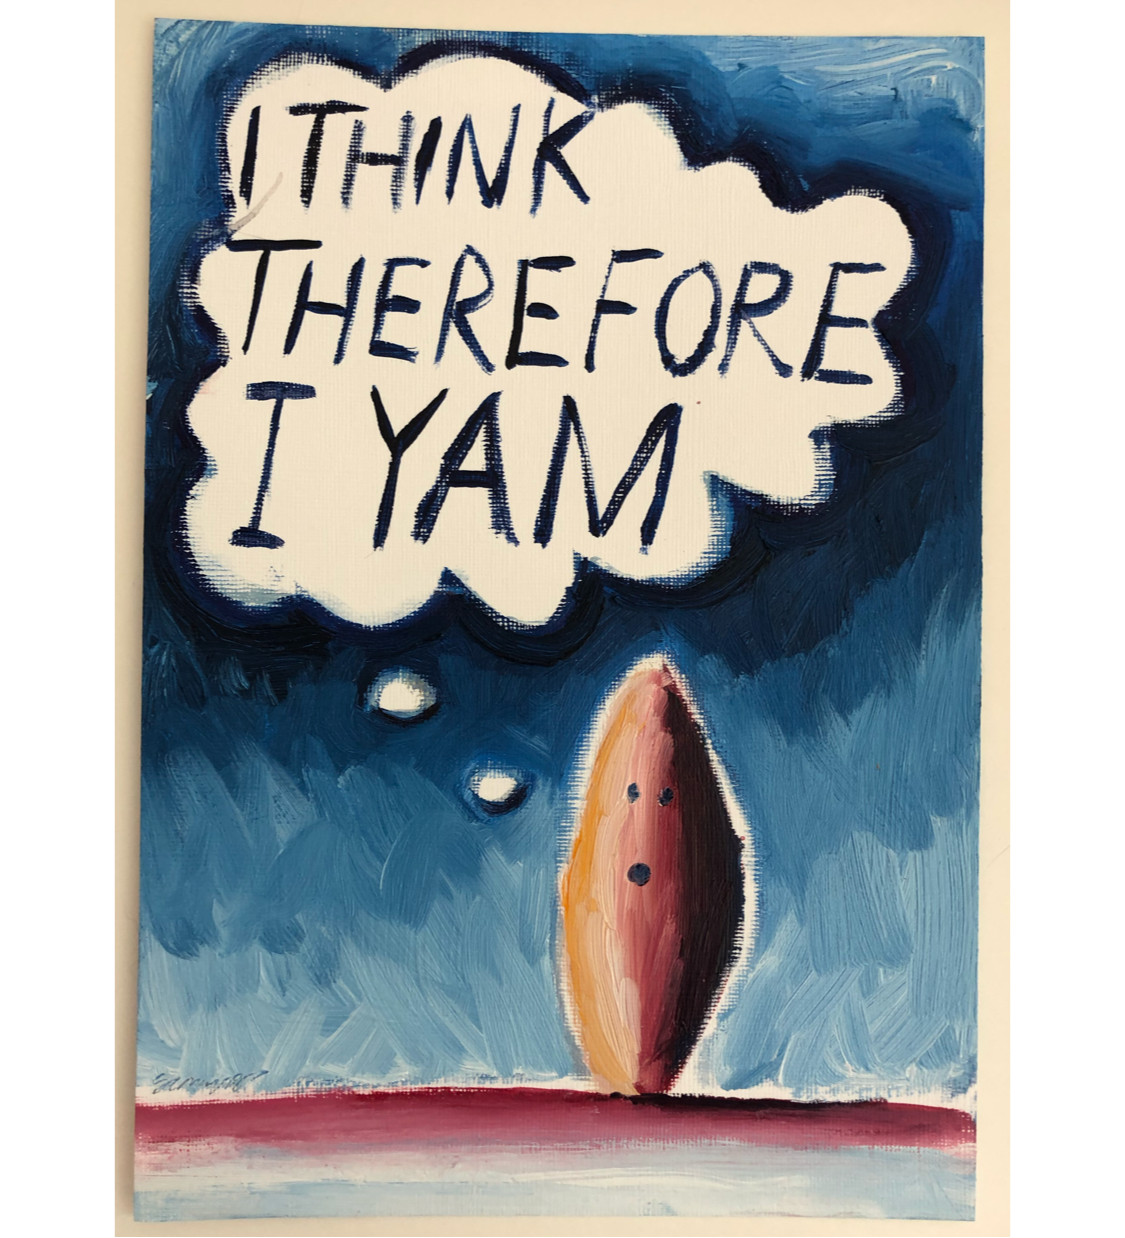 I think therefore I yam